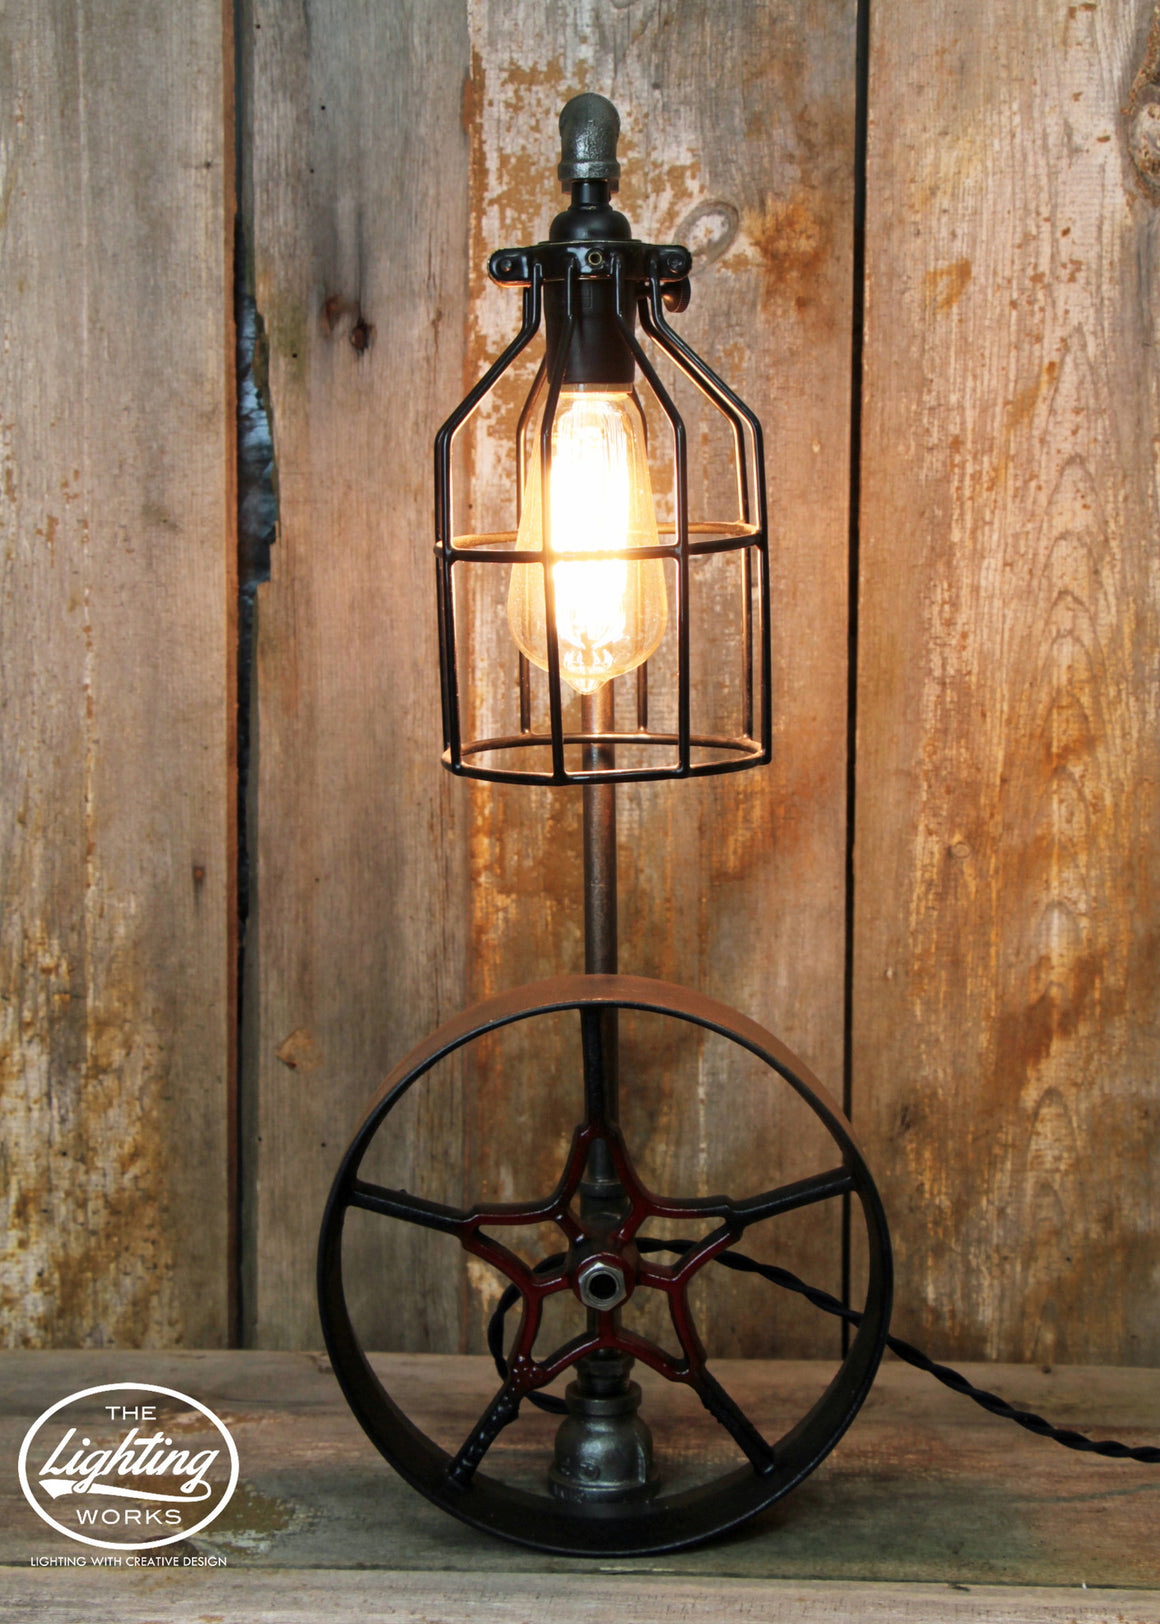 Steampunk Industrial Lamp with Steel Pulley - The Lighting Works